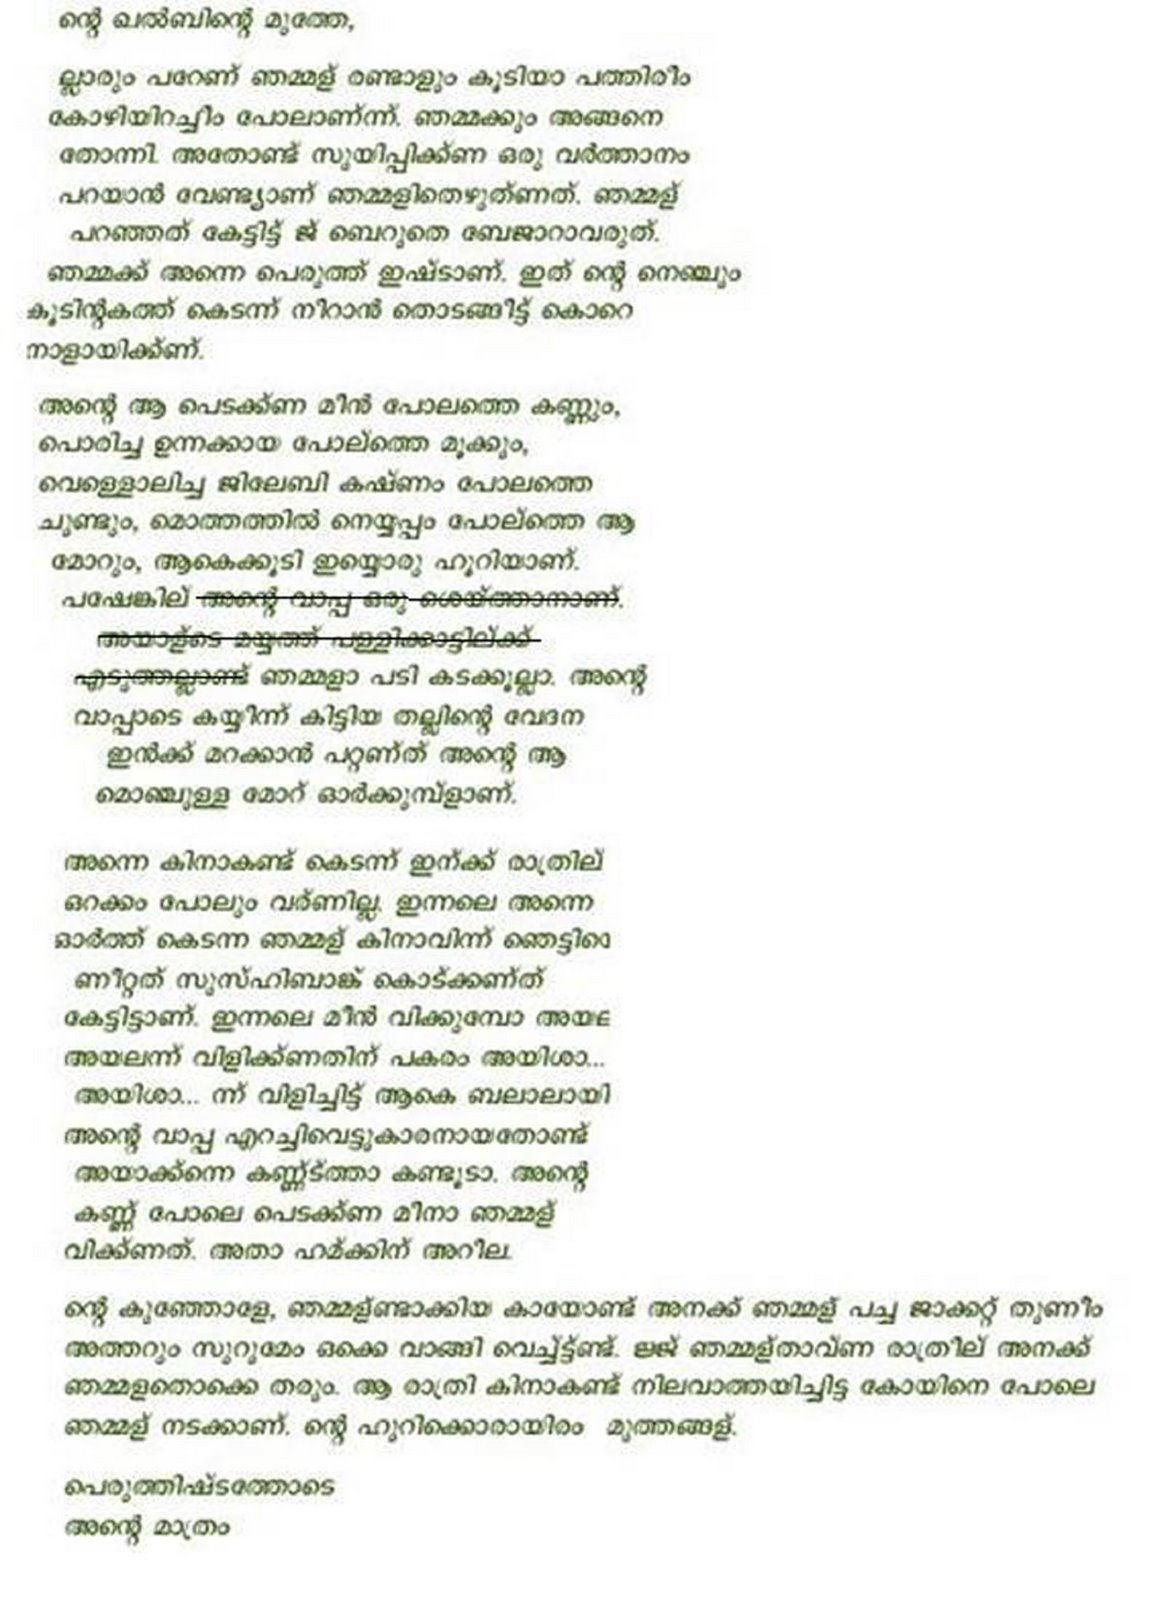 Malayalam love letter download tattad song download malayalam love letter download thecheapjerseys